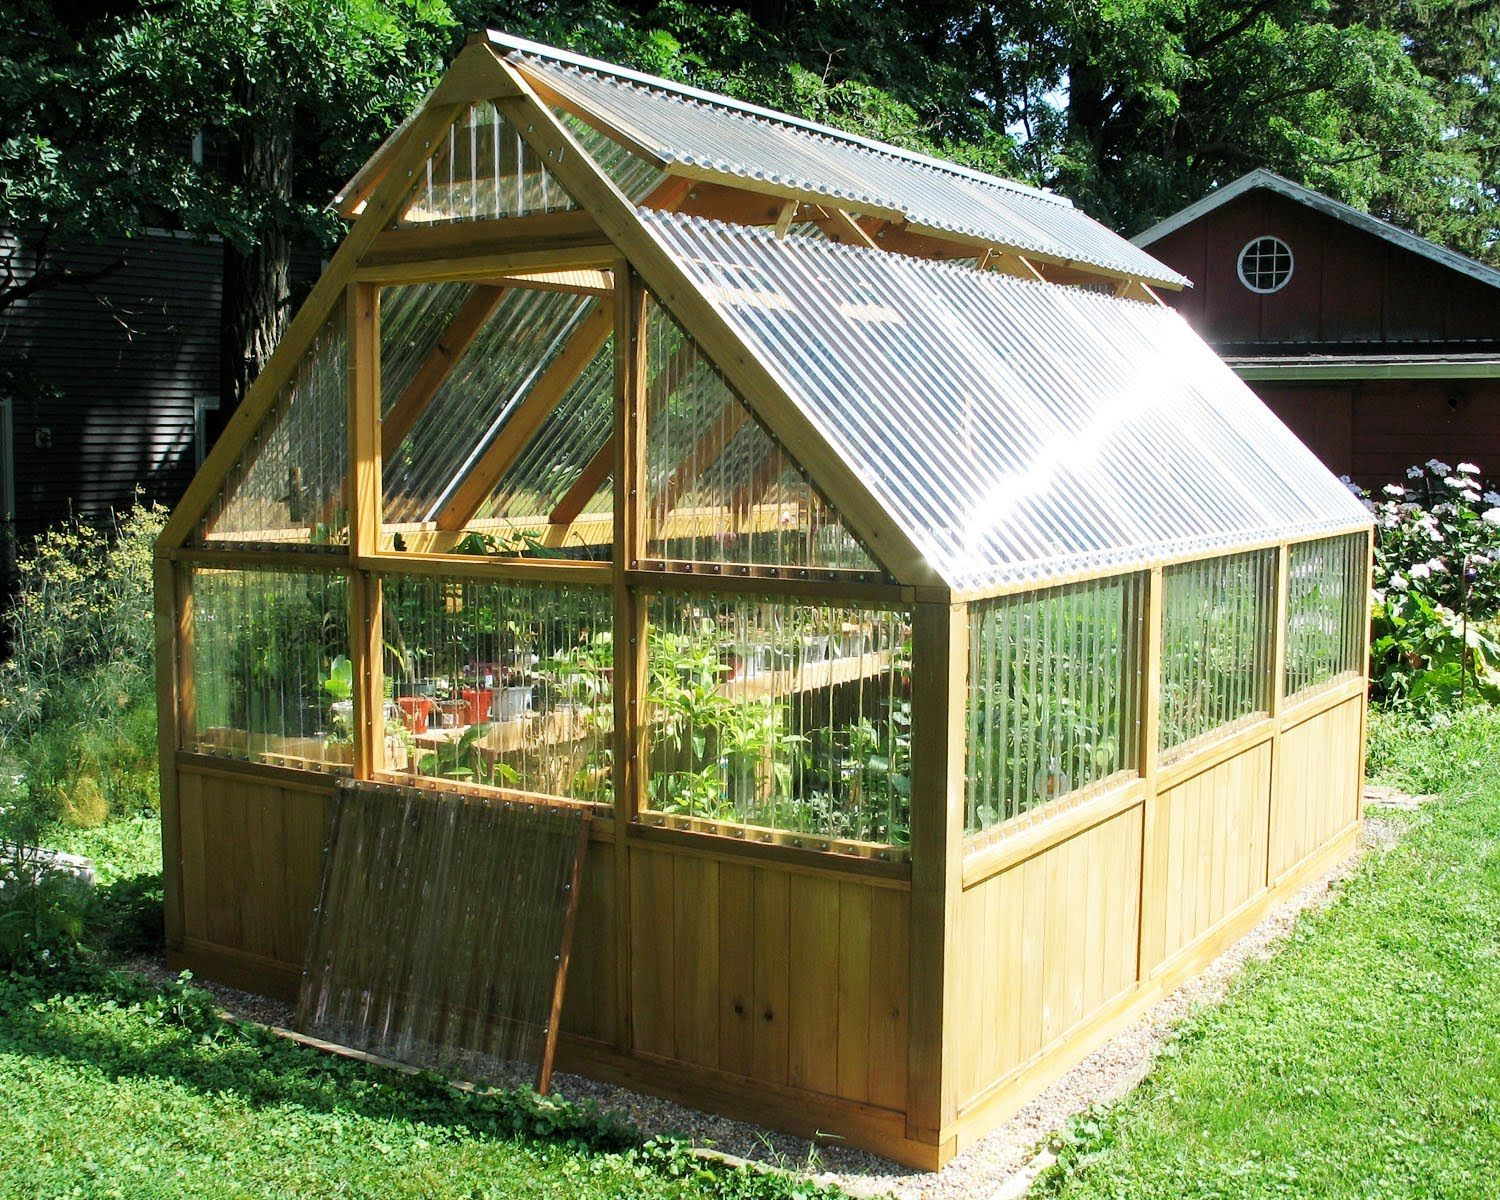 Diy Greenhouse Plans And Greenhouse Kits: Lexan ... encequiconcerne Gouttière Pour Abri De Jardin